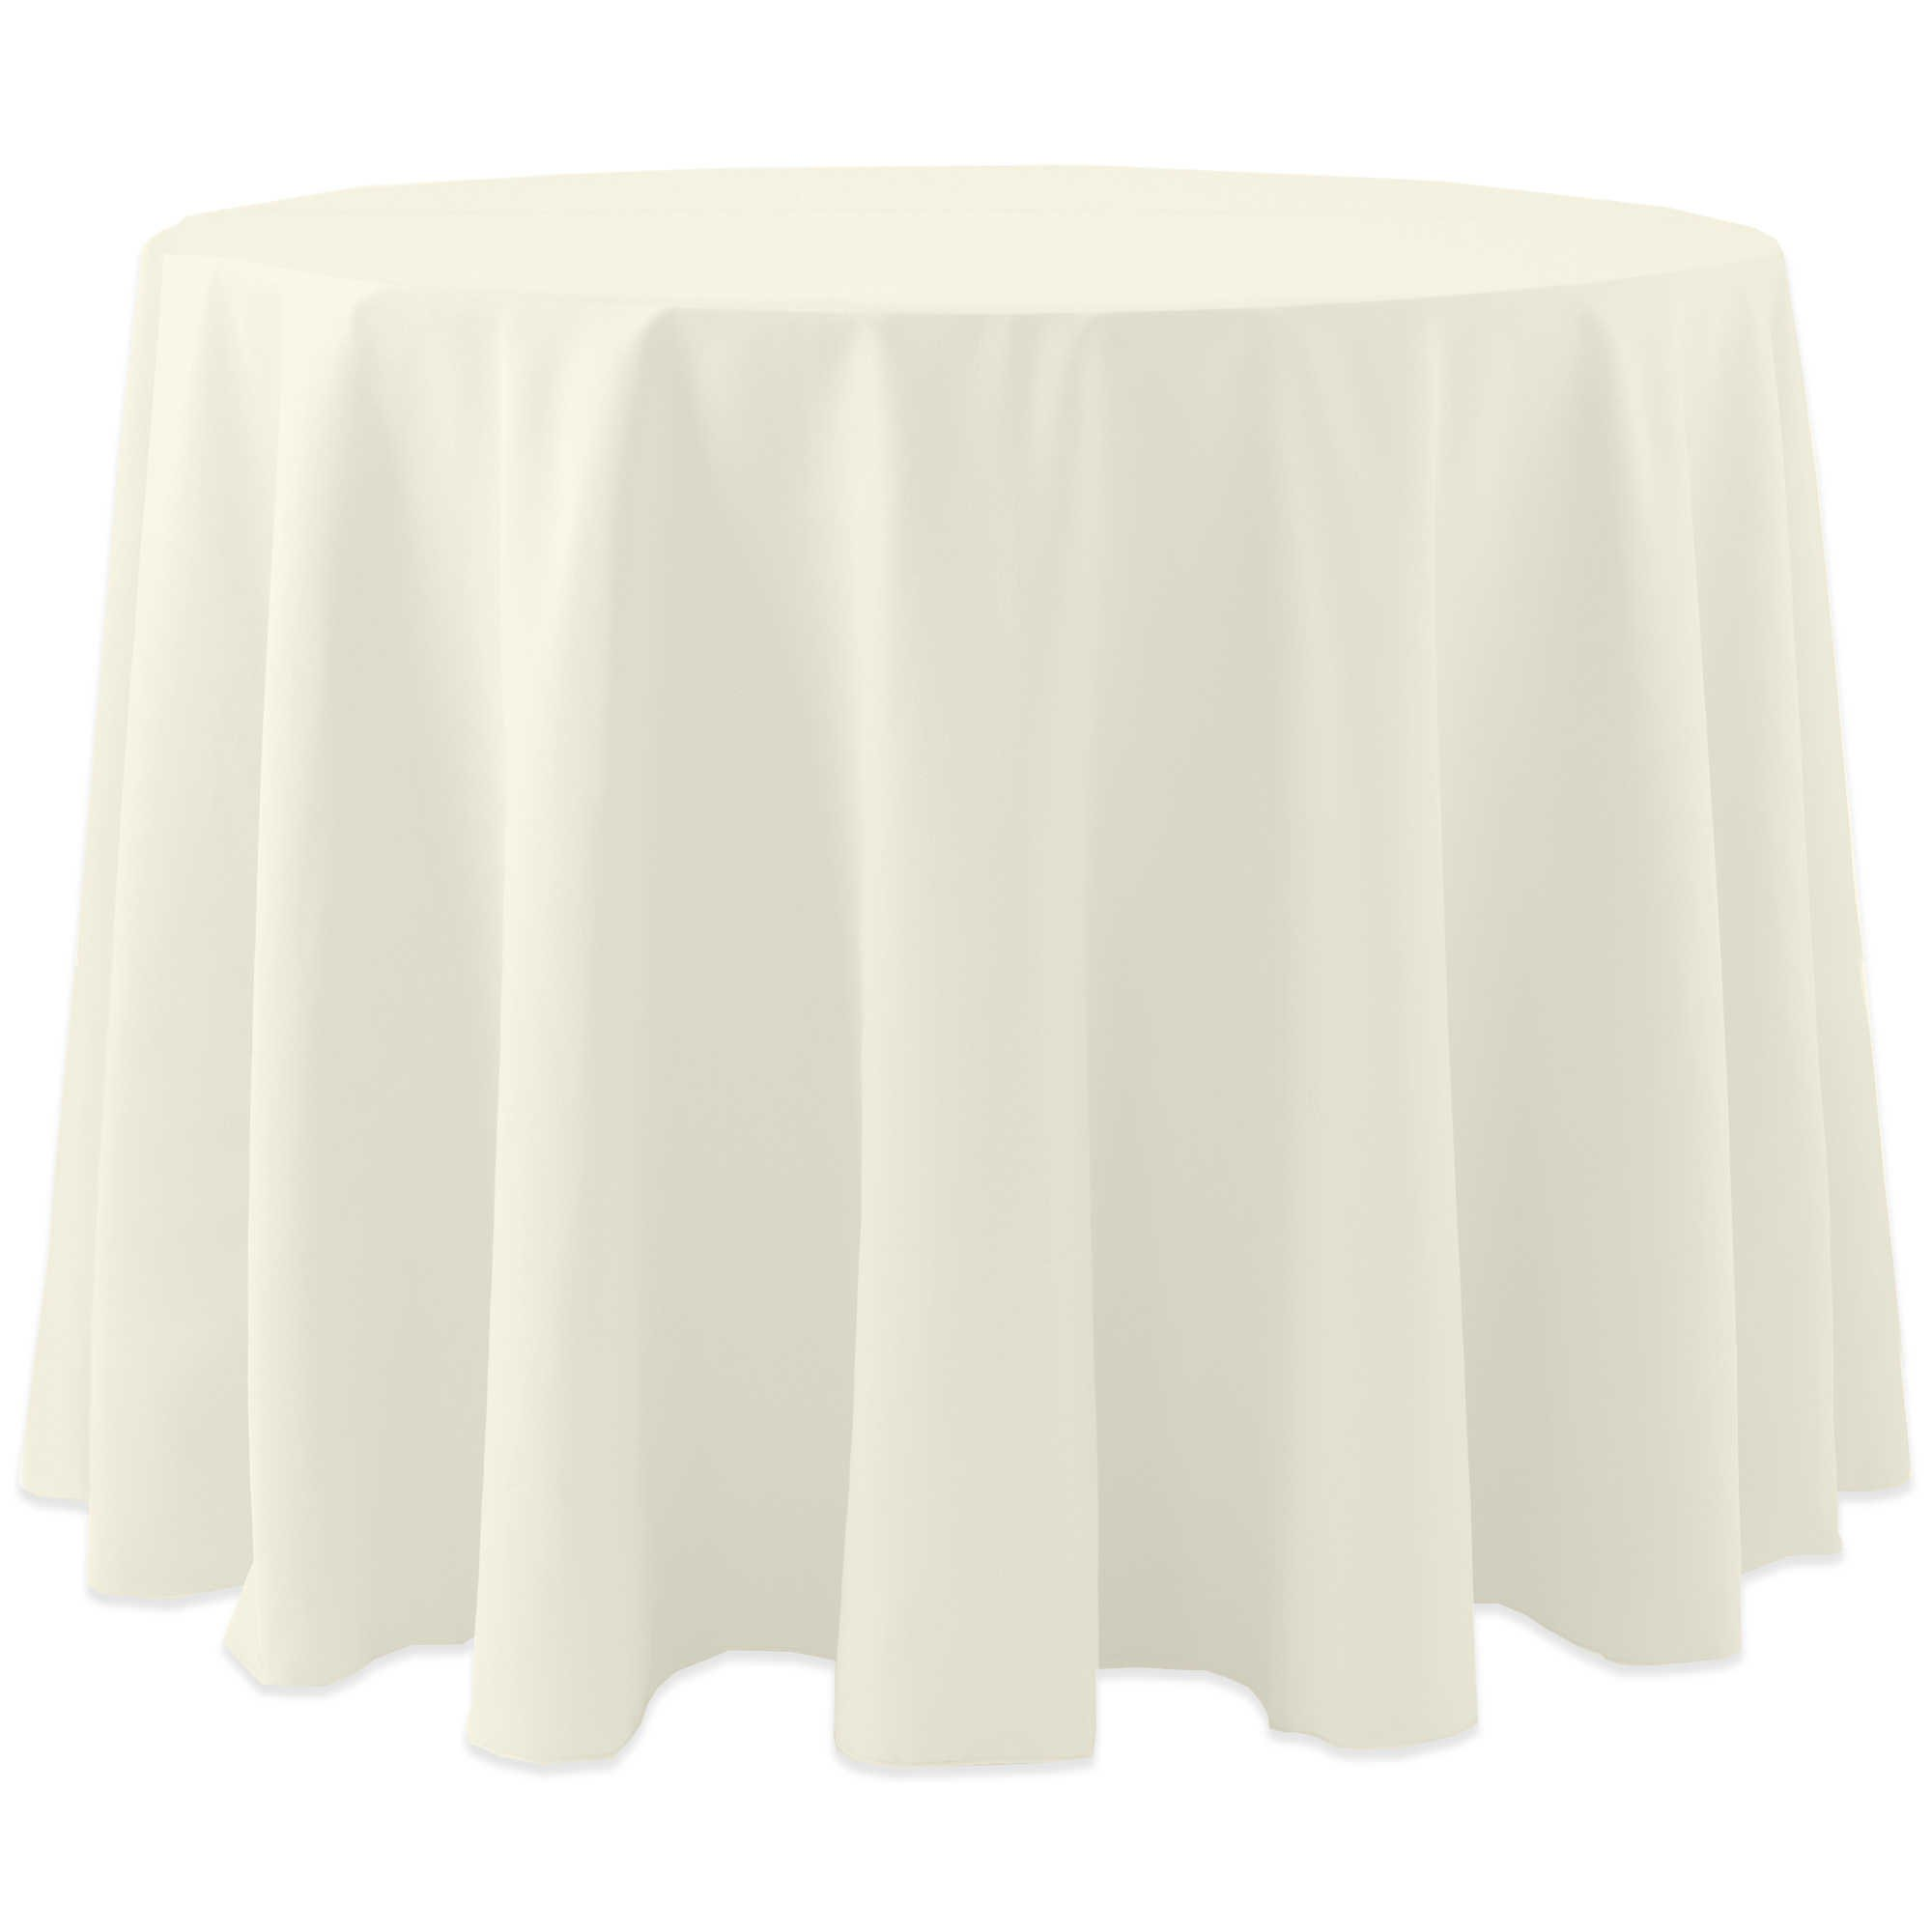 Ultimate Textile (3 Pack) Cotton-feel 84-Inch Round Tablecloth - for Wedding and Banquet, Hotel or Home Fine Dining use, Ivory Cream